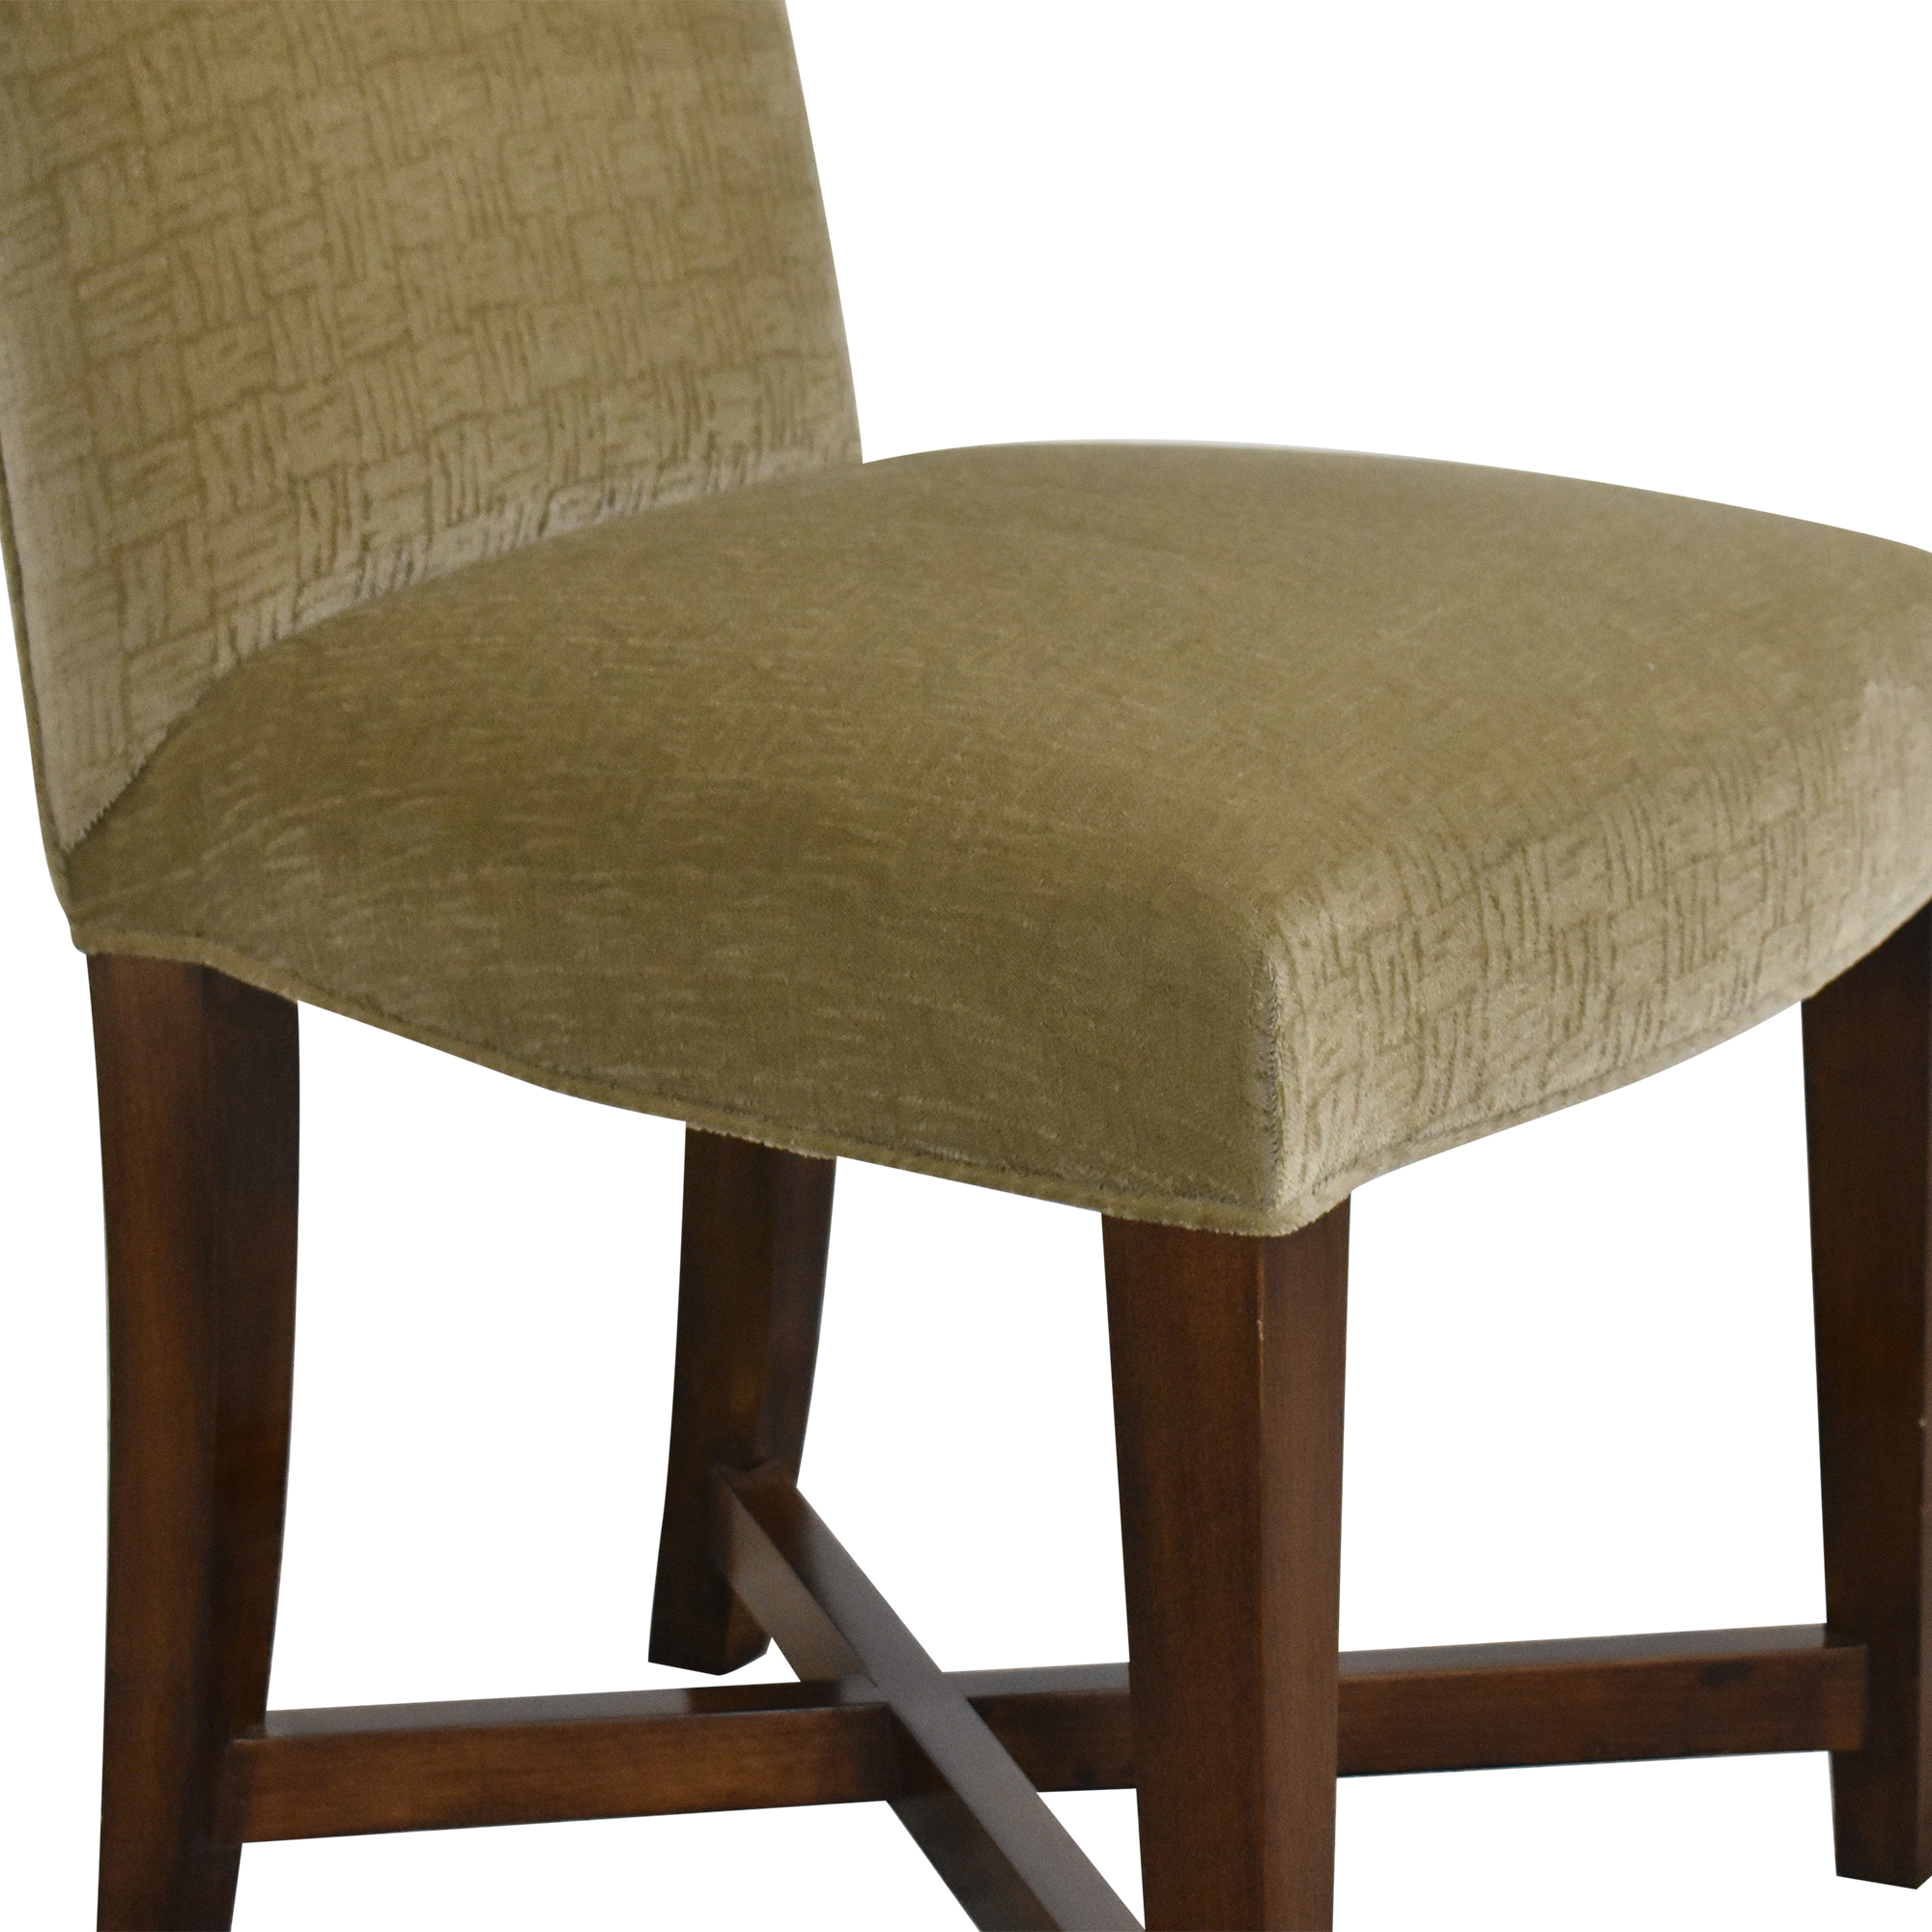 shop Donghia Custom Upholstered Chair Donghia Dining Chairs